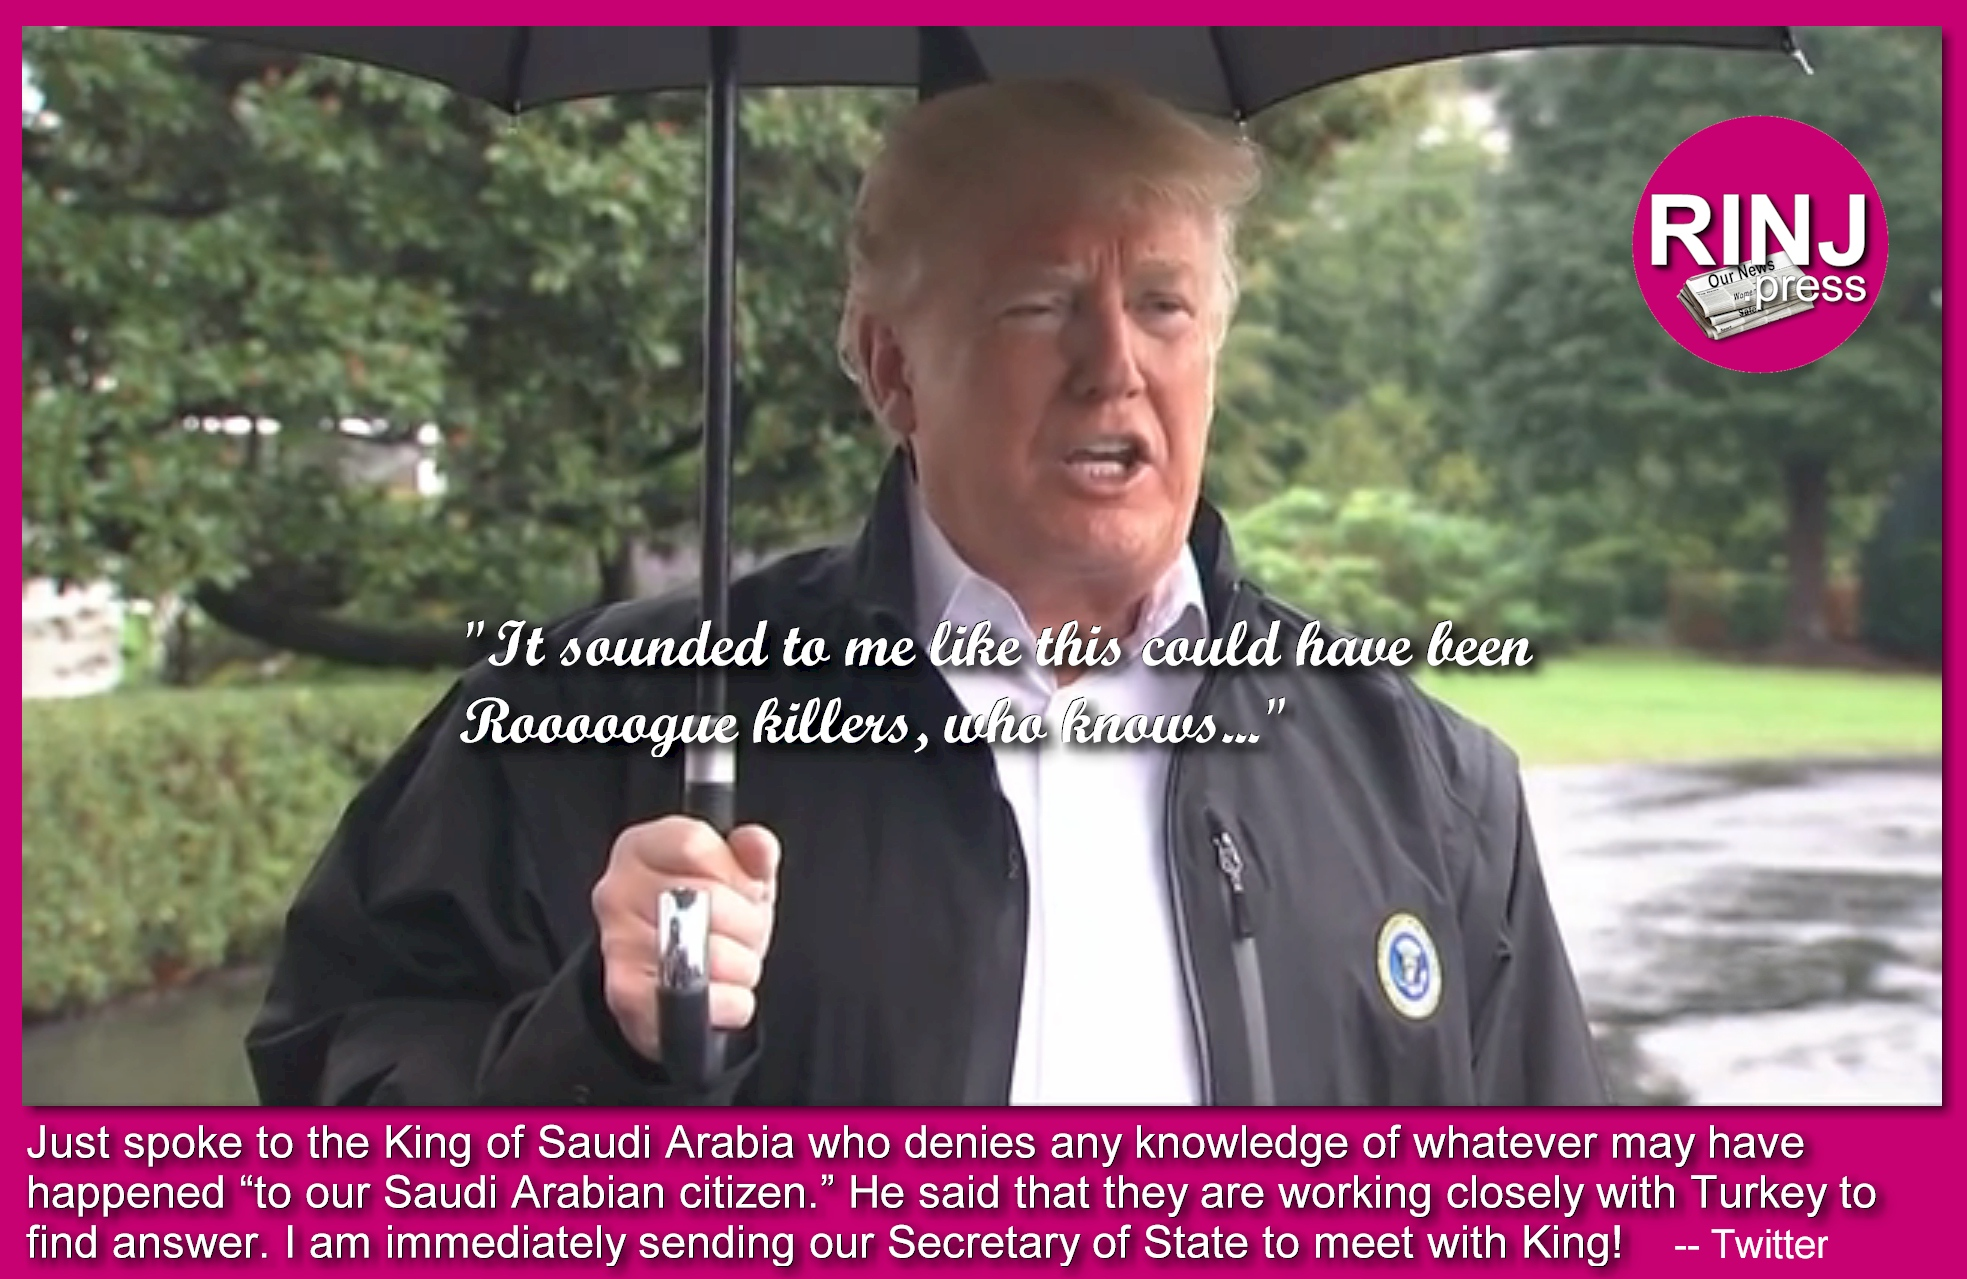 poke to the King of Saudi Arabia who denies any knowledge of whatever may have happened